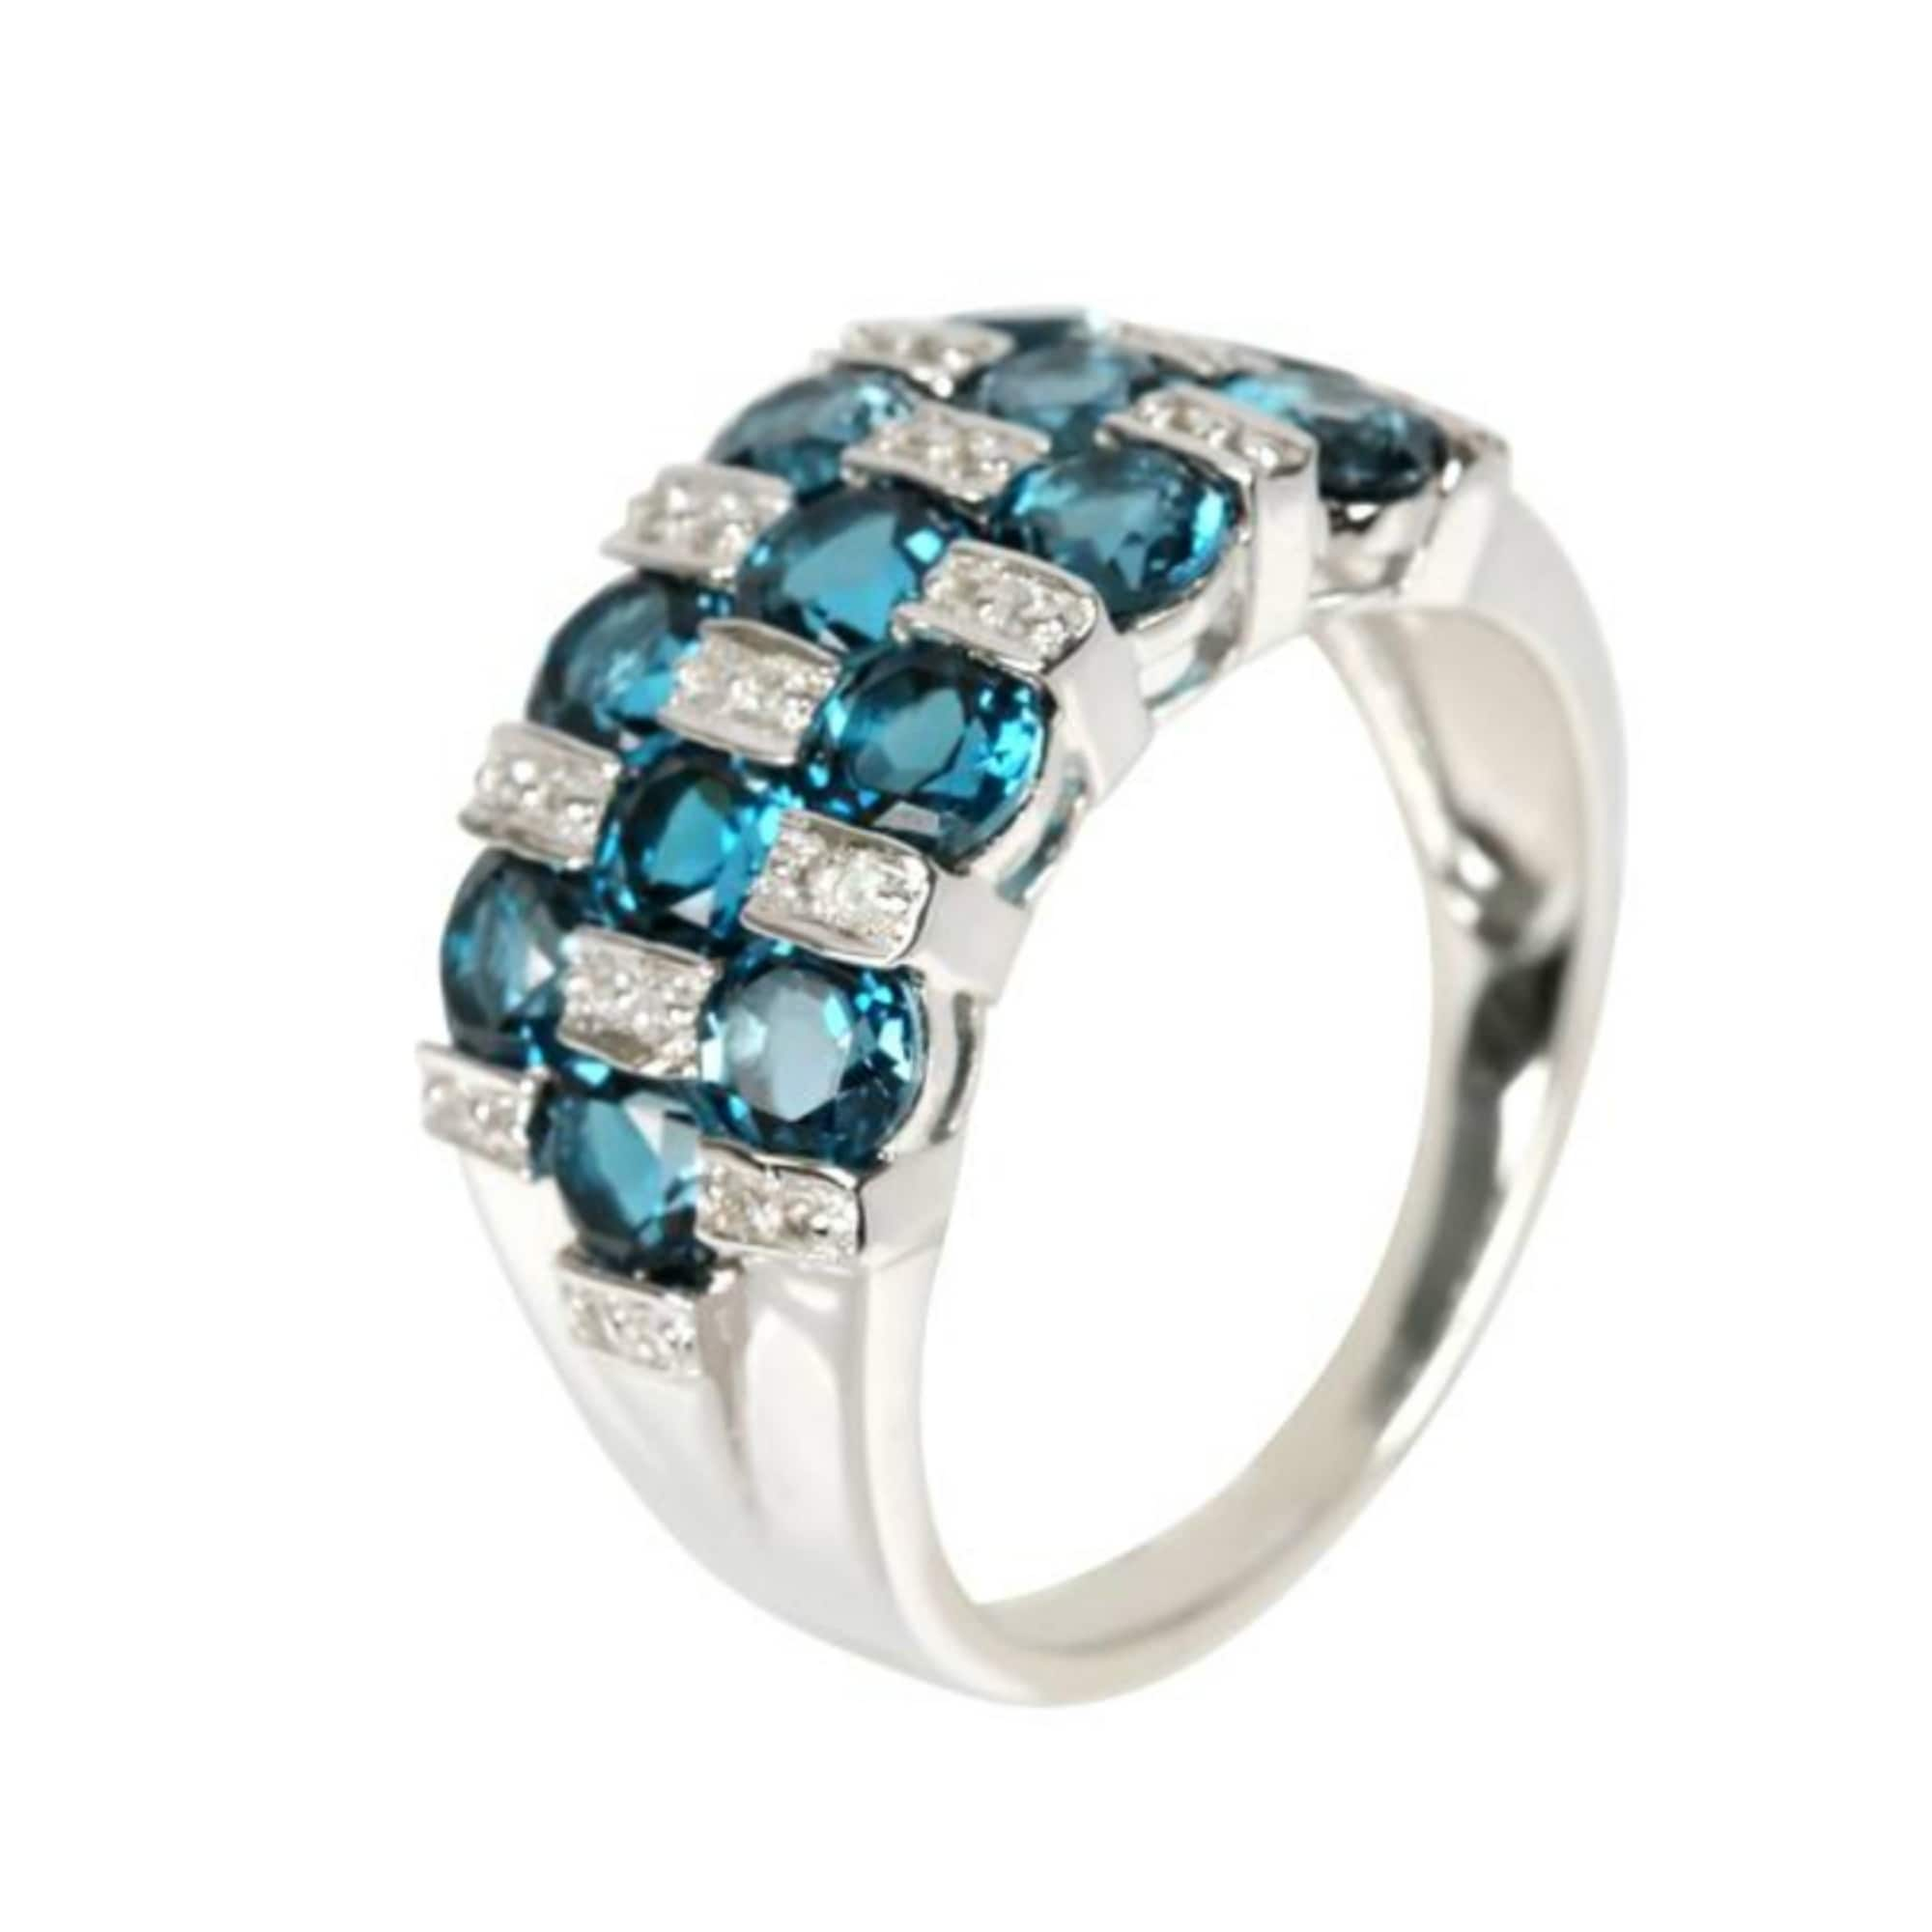 London Blue Topaz Engagement Ring in Stirling Silver-Crystal Healing Stone Ring-White Gold Curved Plated-Wedding Ring-Gift For Her